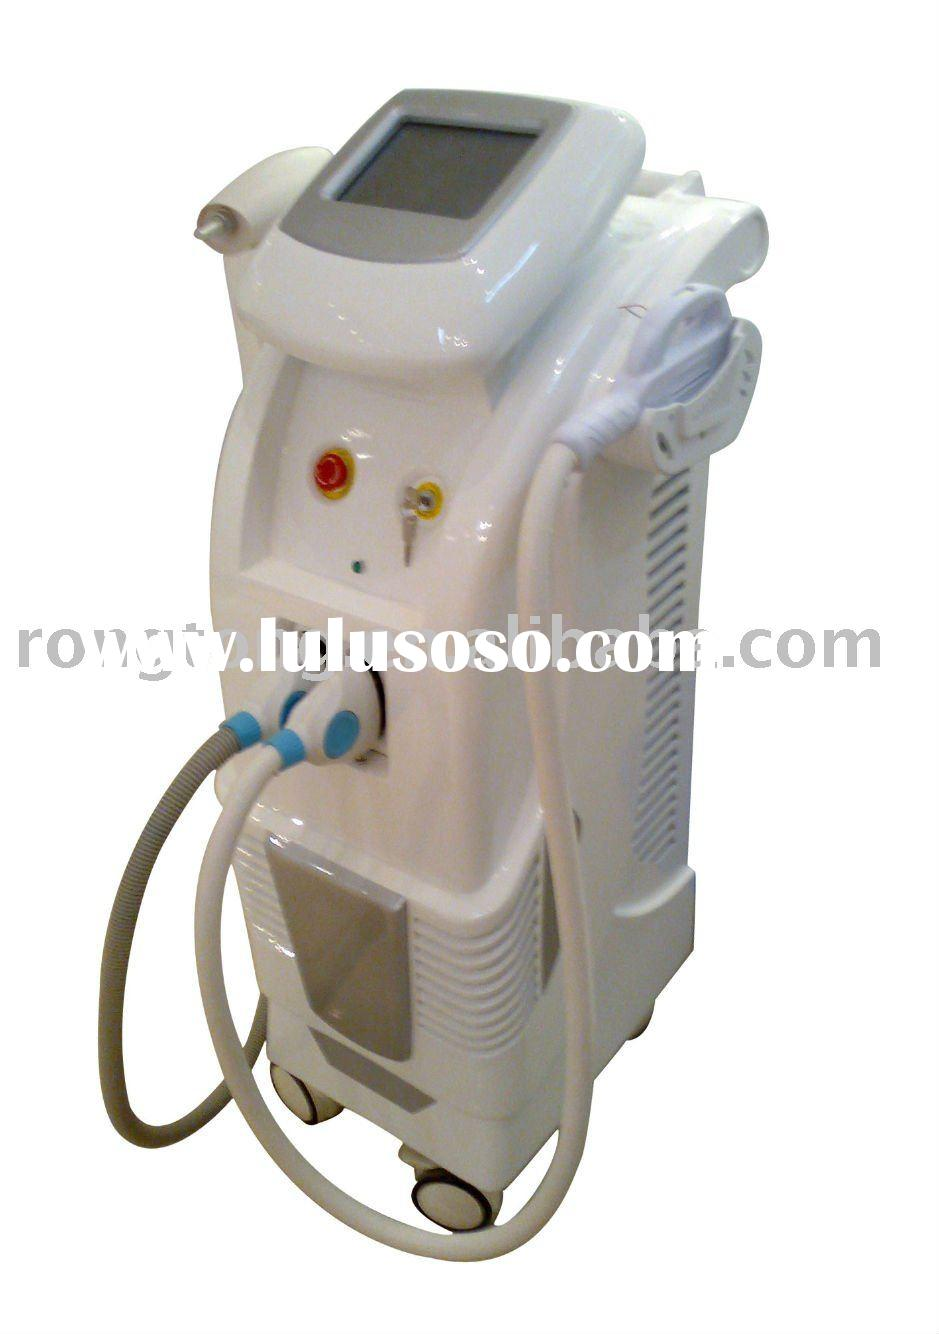 IPL hair removal and laser tattoo removal system